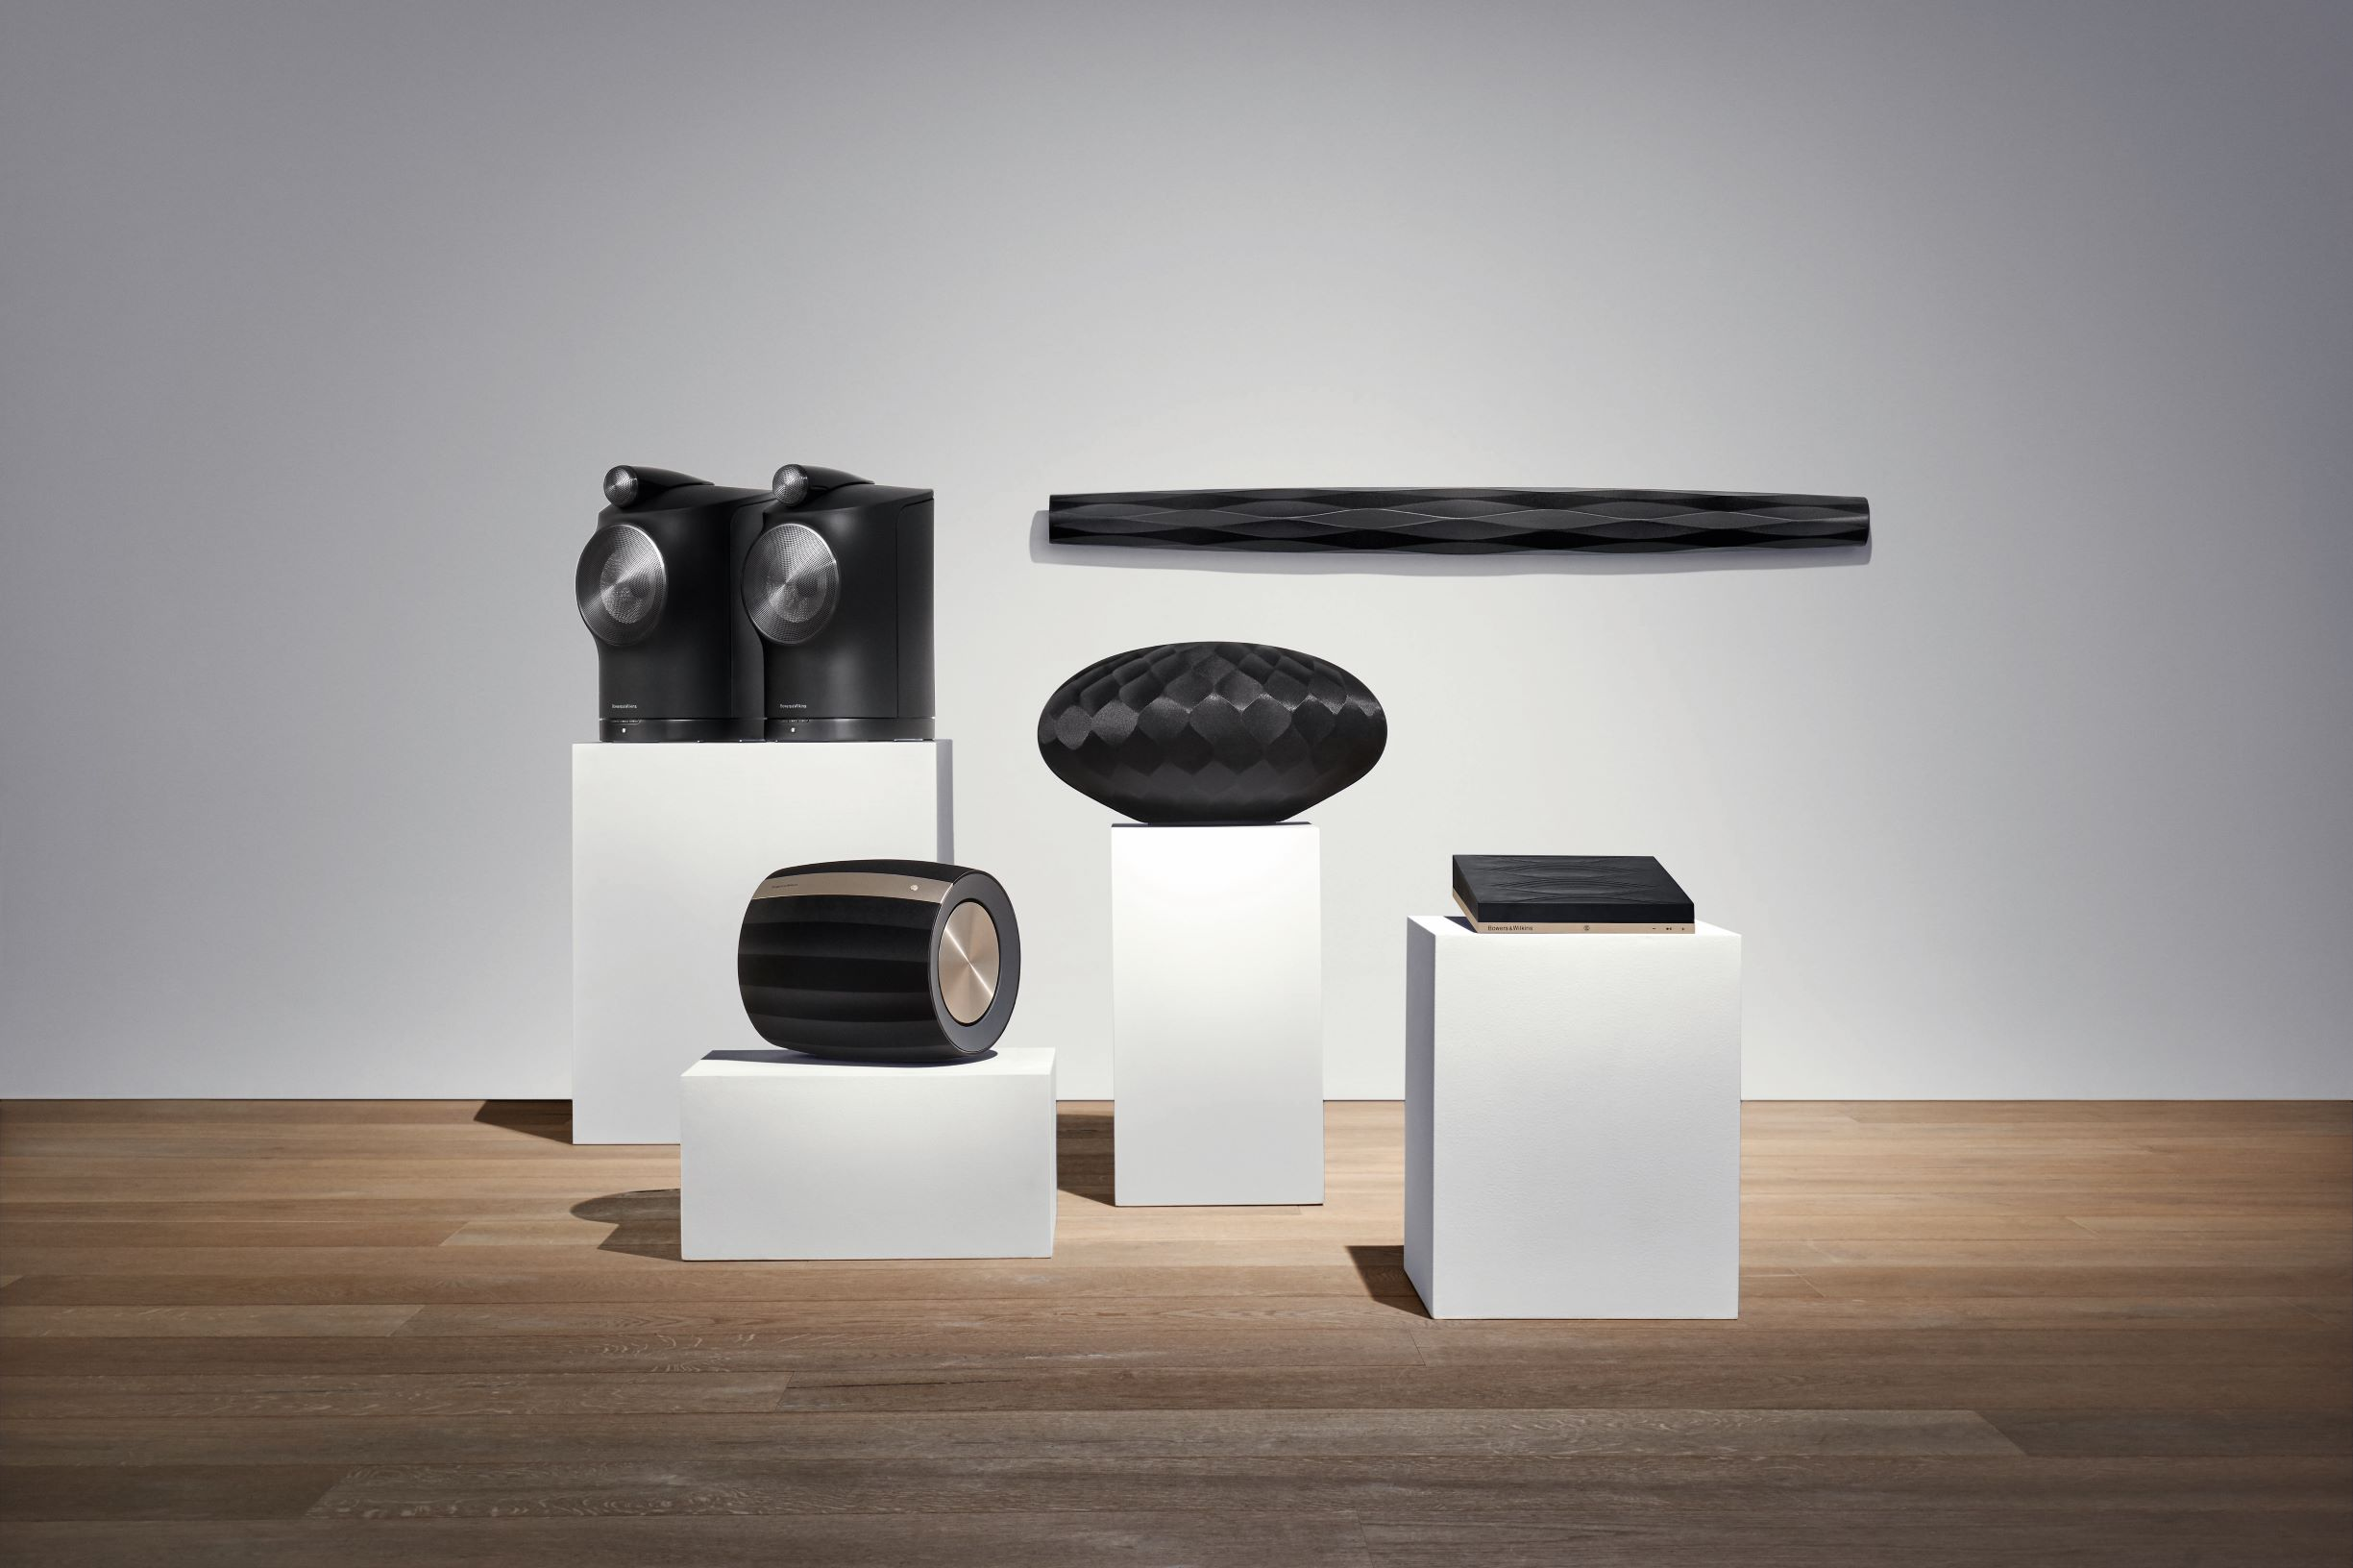 15 juni – Bowers & Wilkins Formation Experience